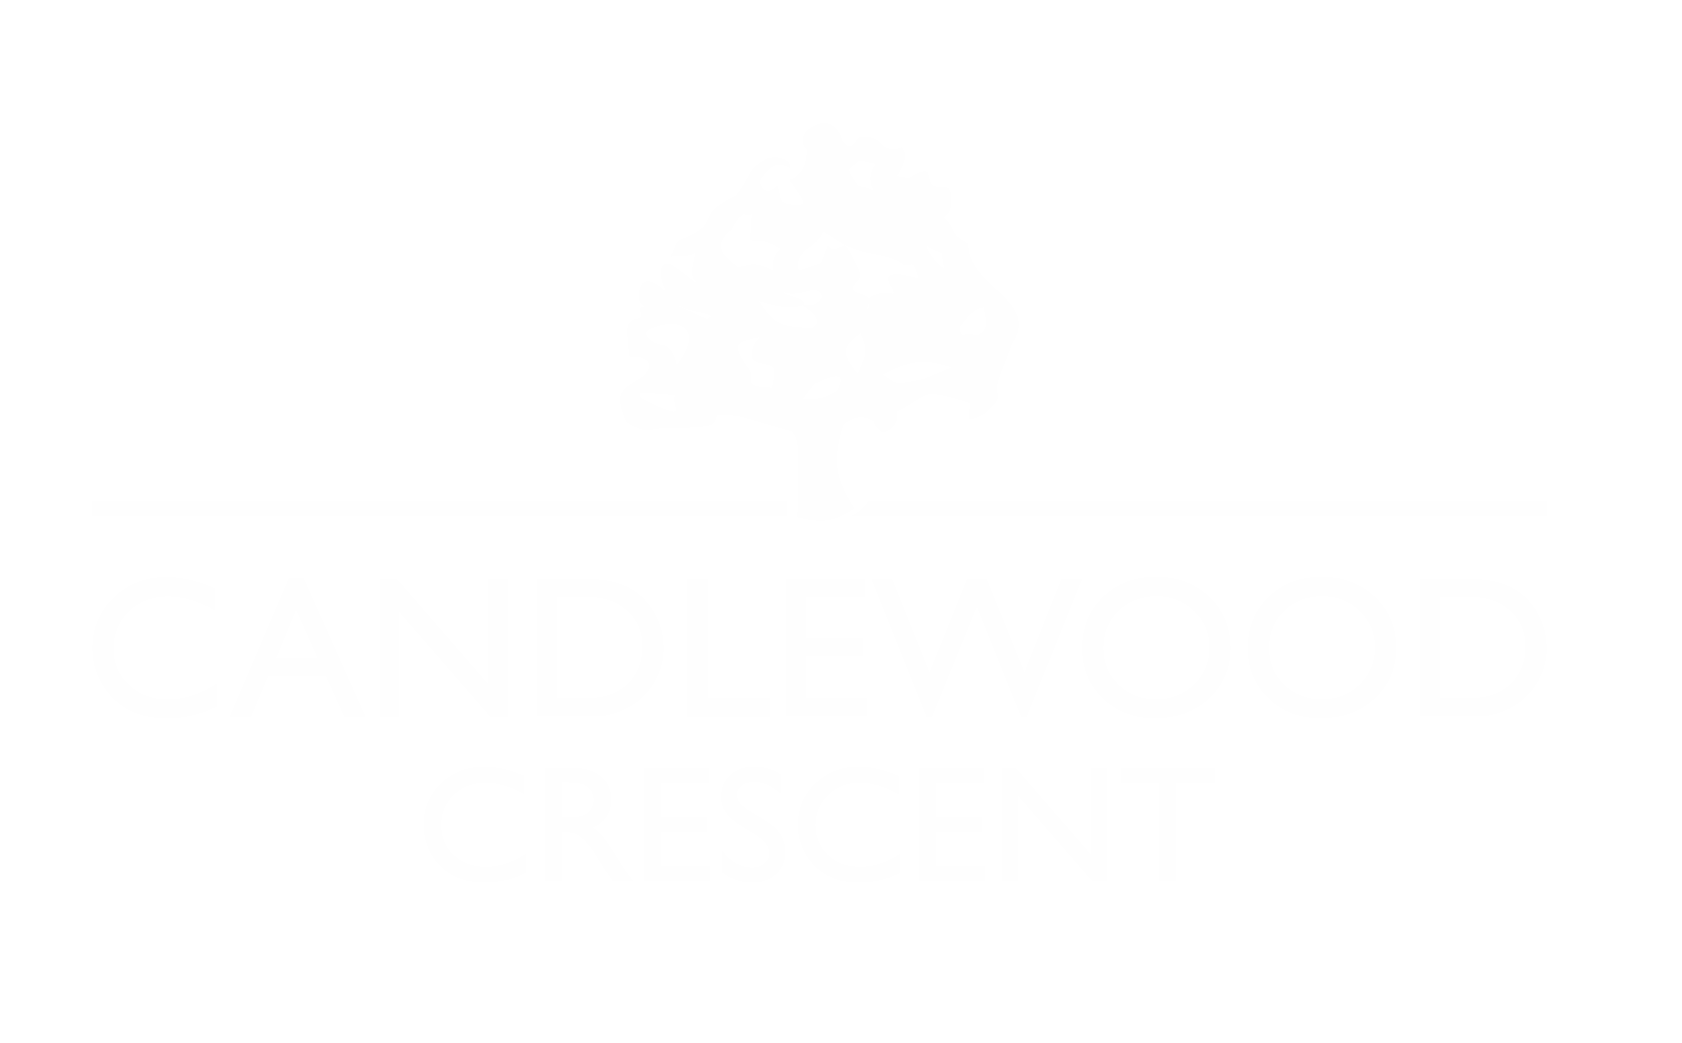 Candlewood Crescent